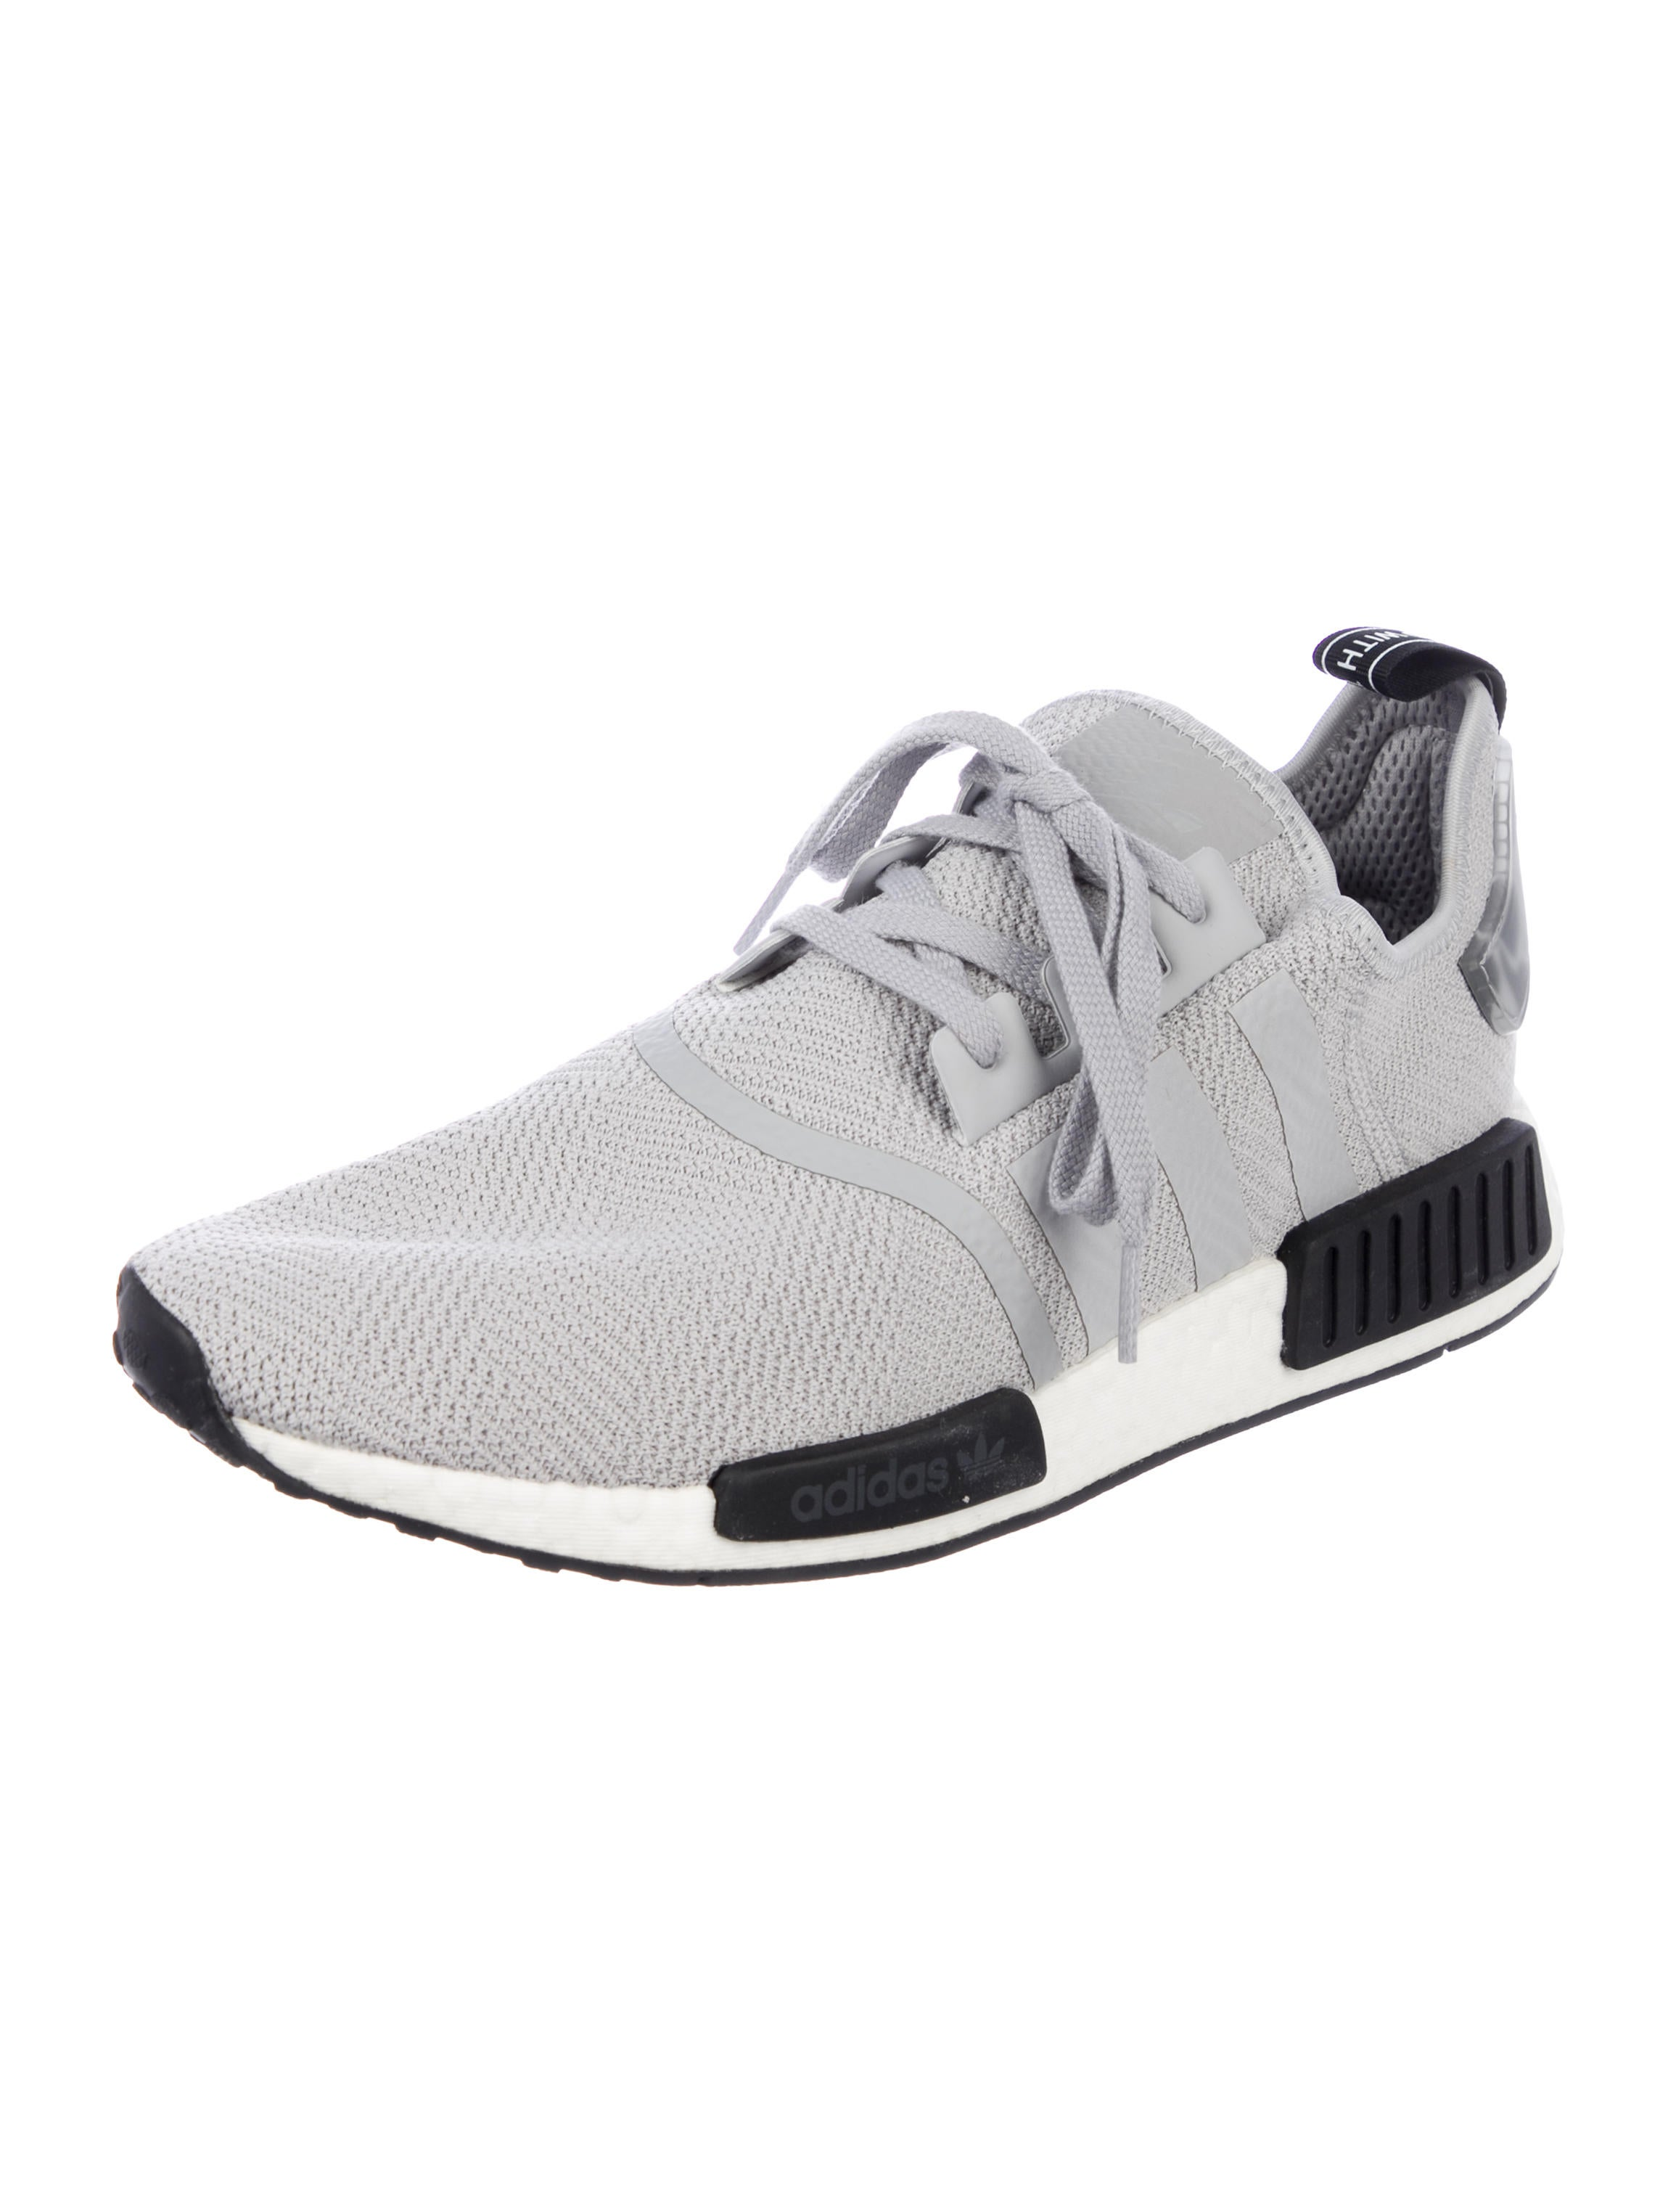 Adidas NMD R1 Sneakers Shoes W2ADS29778   The RealReal